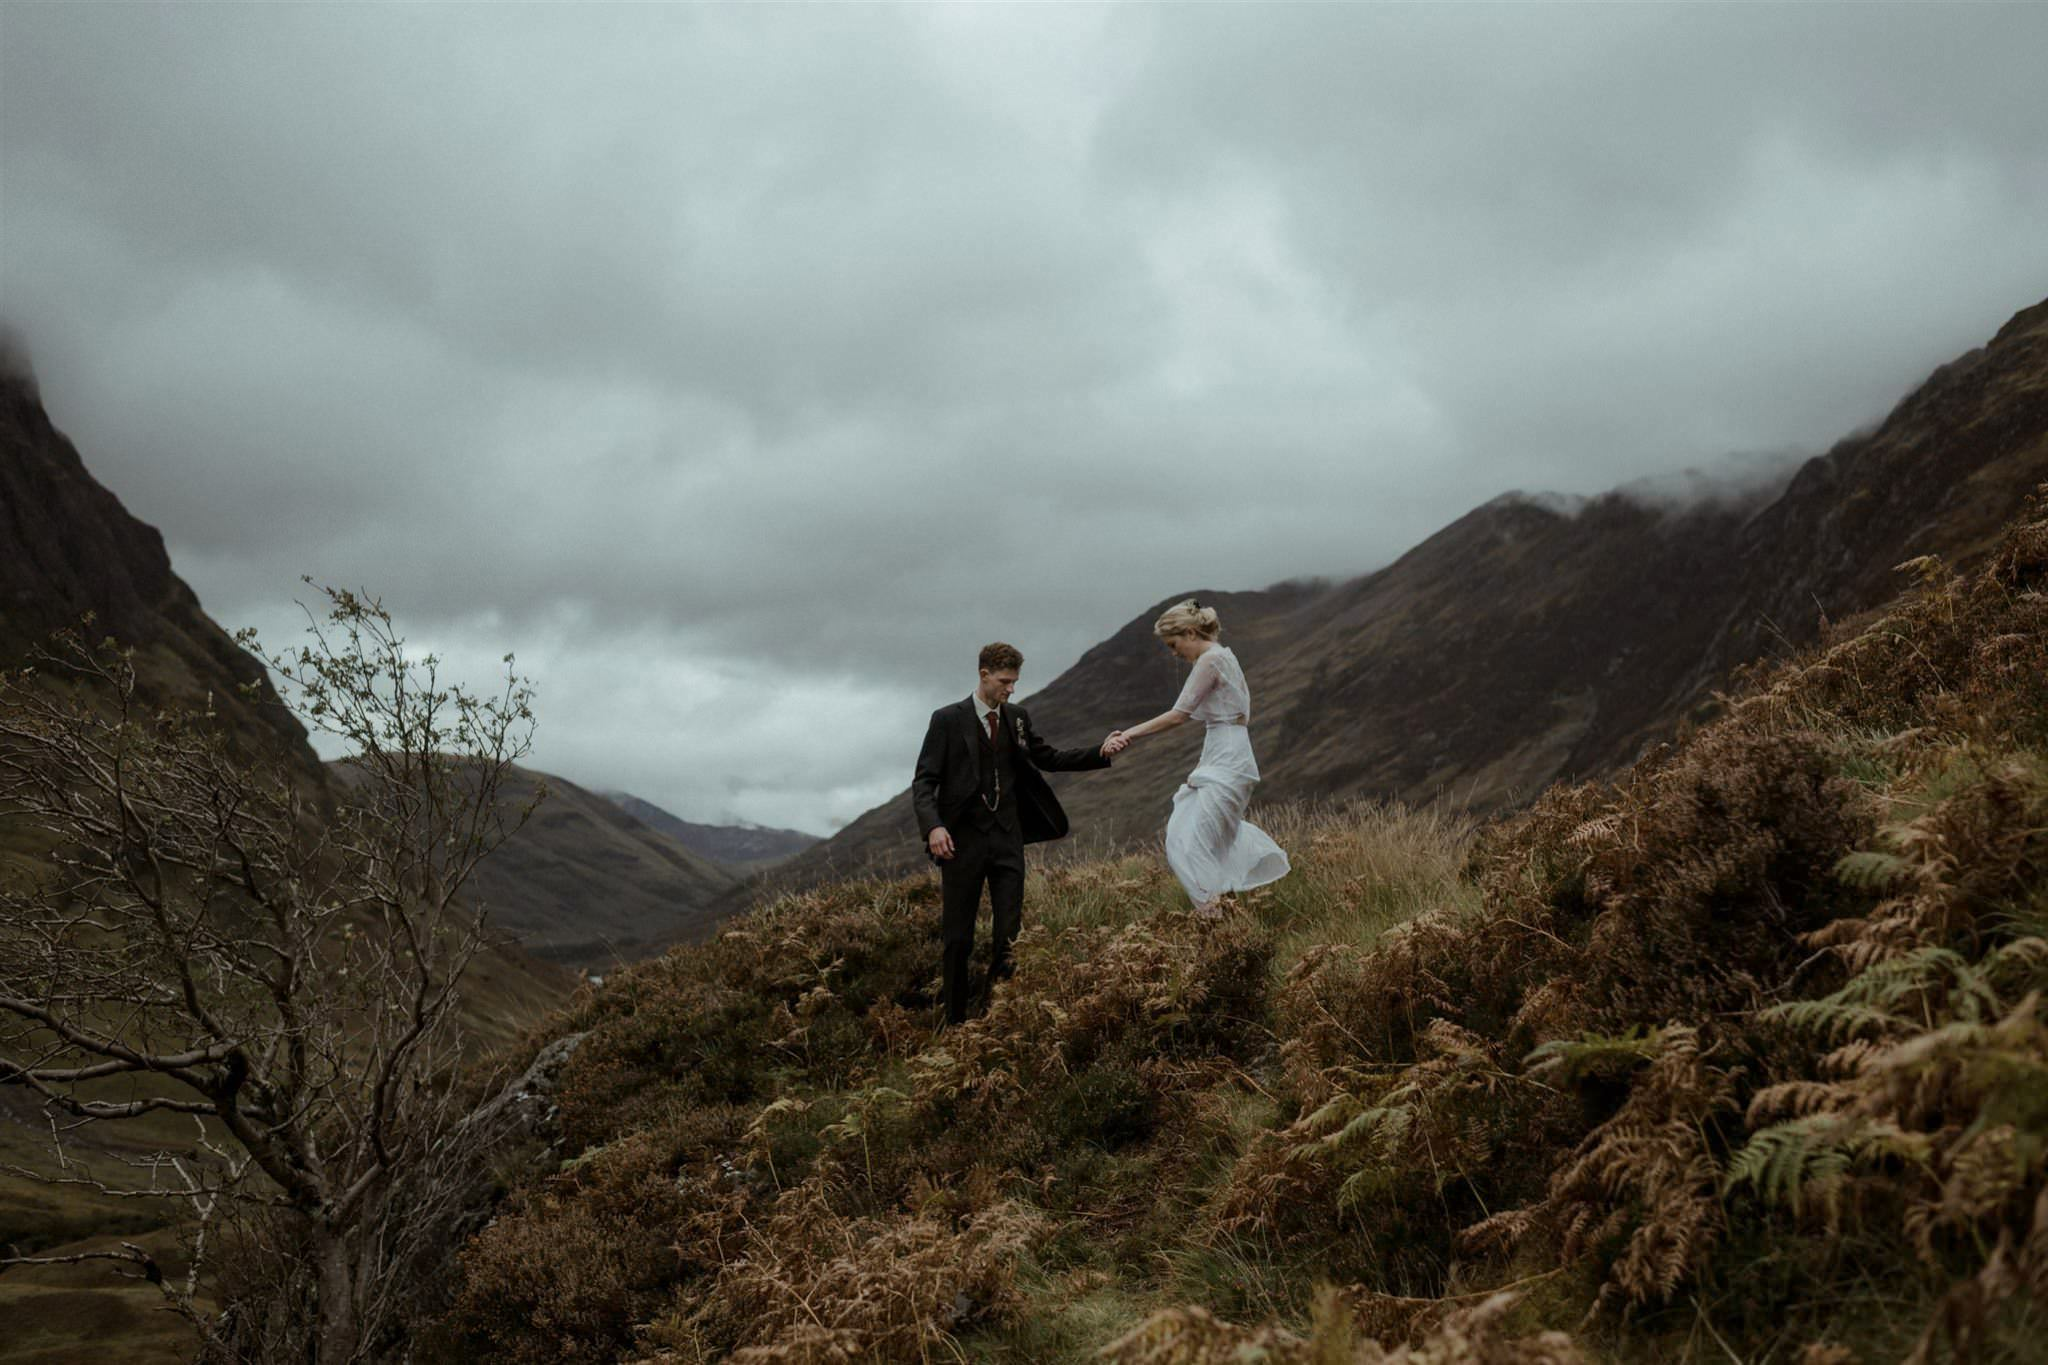 Groom helps bride walk down mountain after their Glencoe elopement wedding ceremony in Scotland